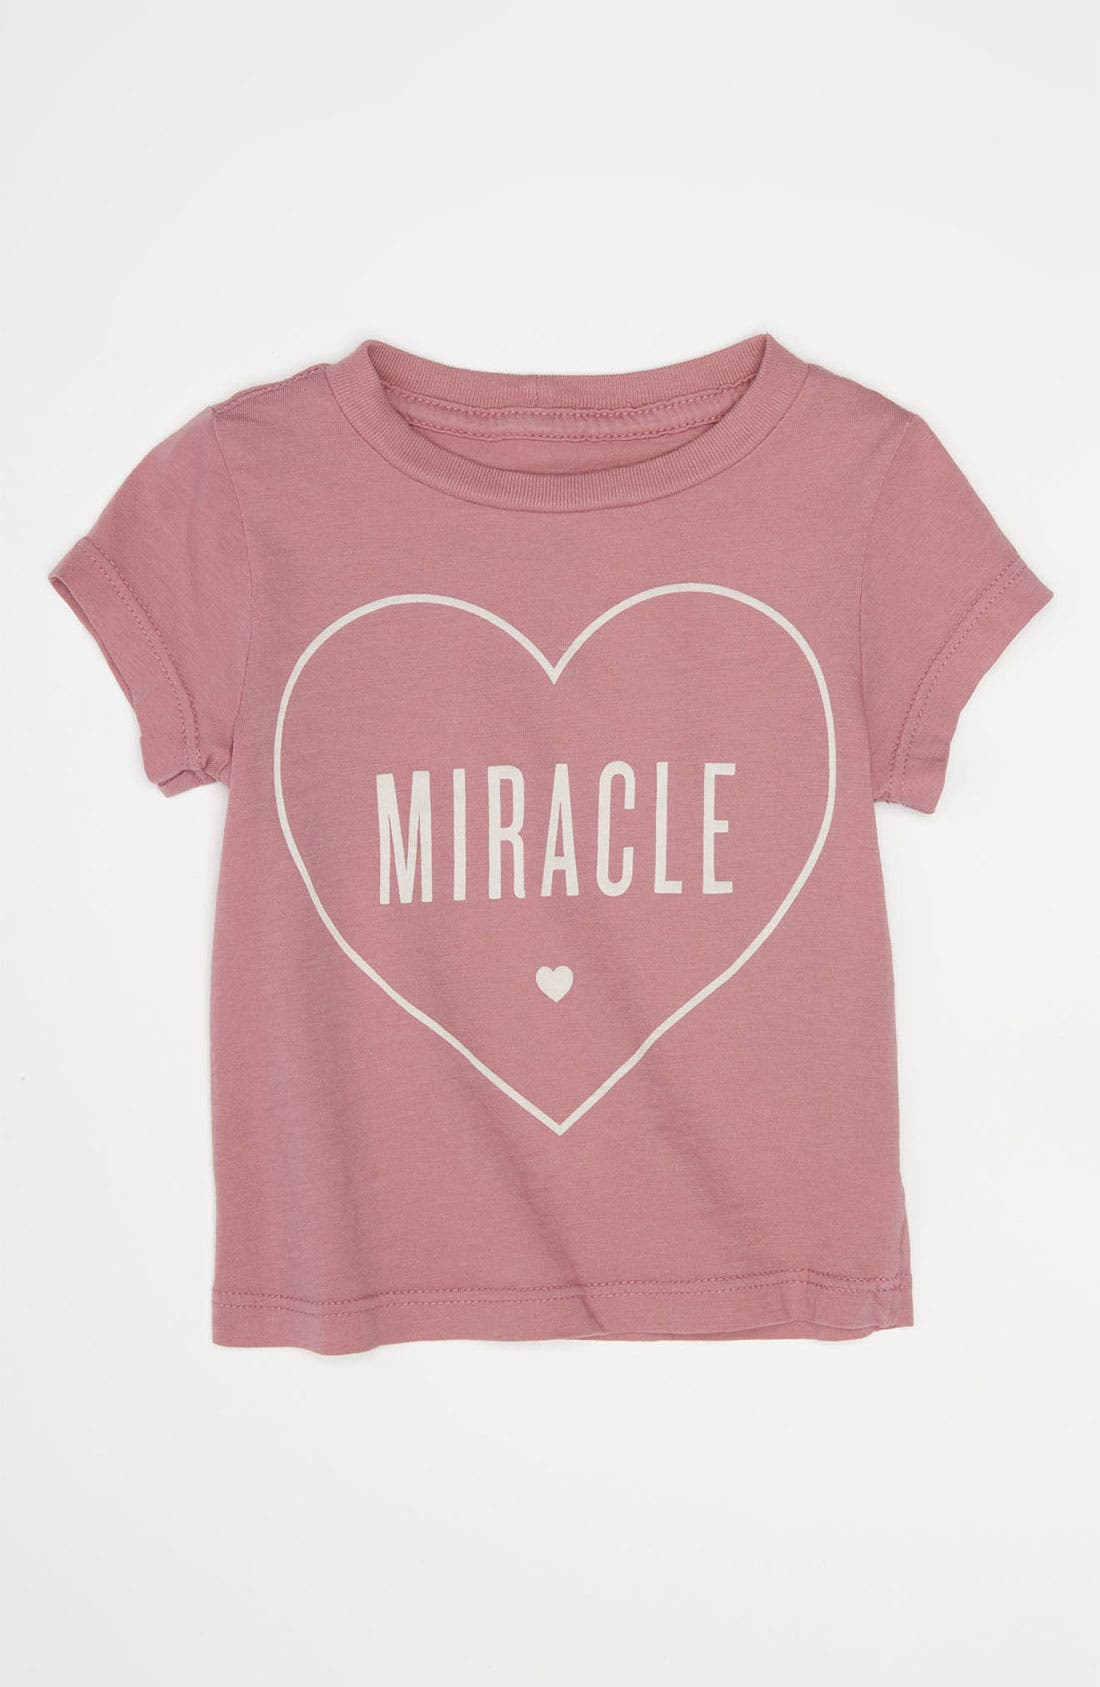 Alternate Image 1 Selected - Peek 'Little Peanut - Miracle' Tee (Baby)